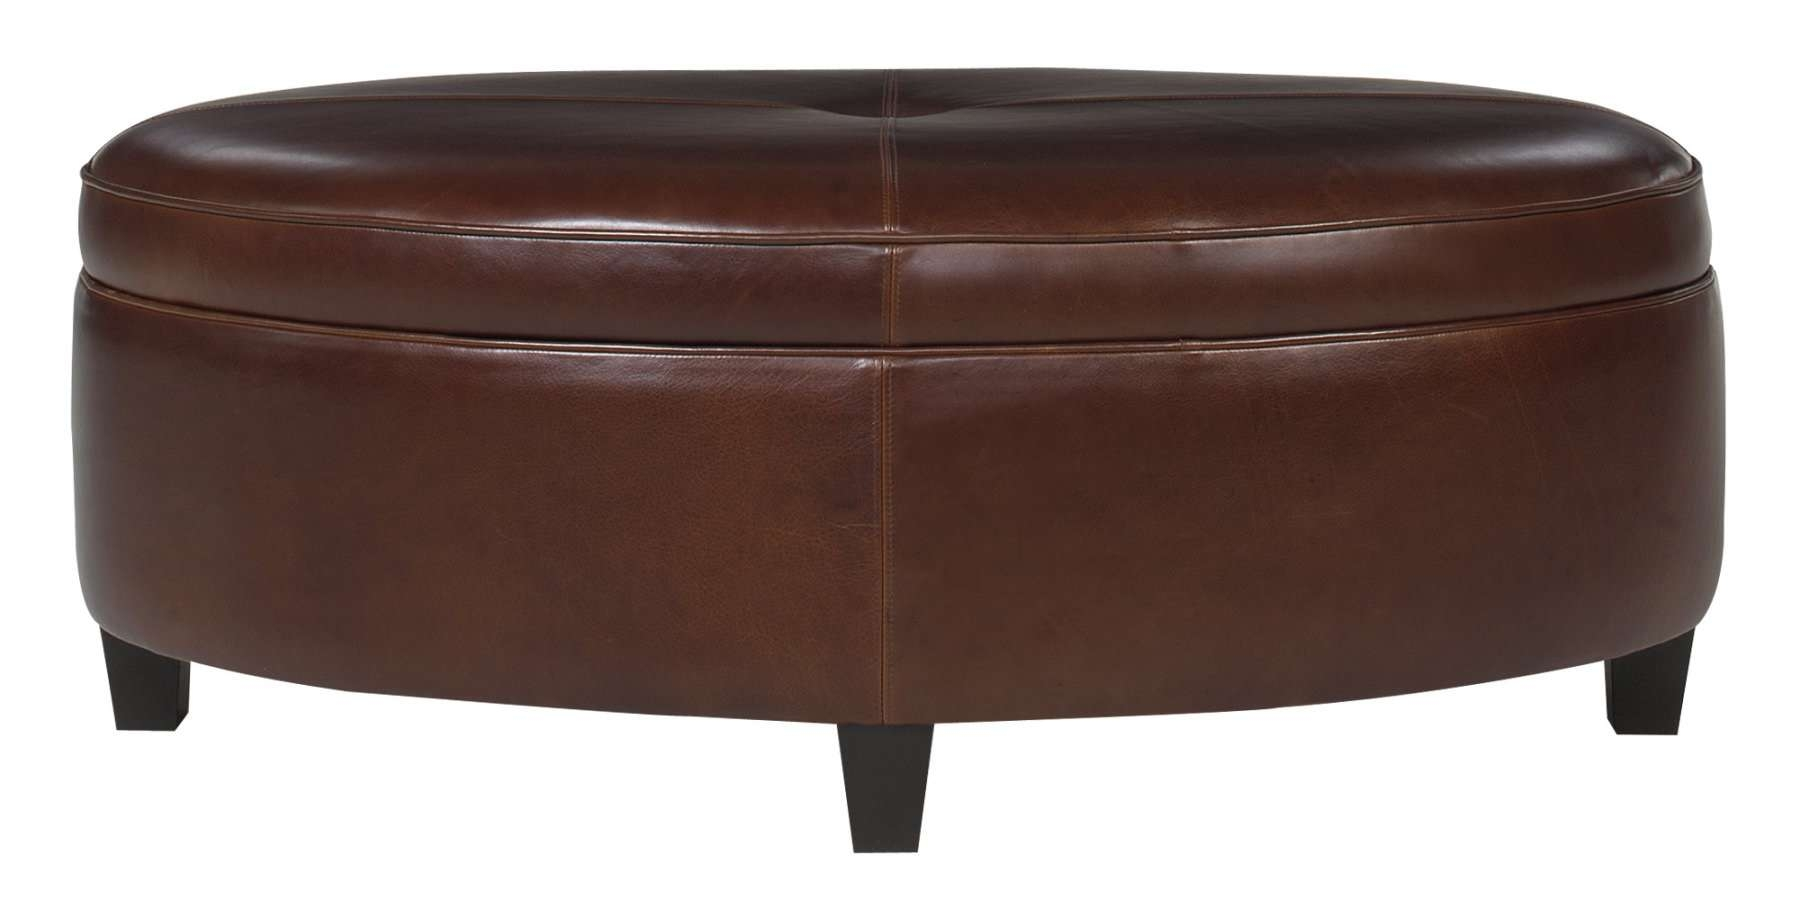 Popular Brown Leather Ottoman Coffee Tables With Storages Pertaining To Beautiful Leather Ottoman Coffee Table Furniture Coffee Table (View 12 of 20)